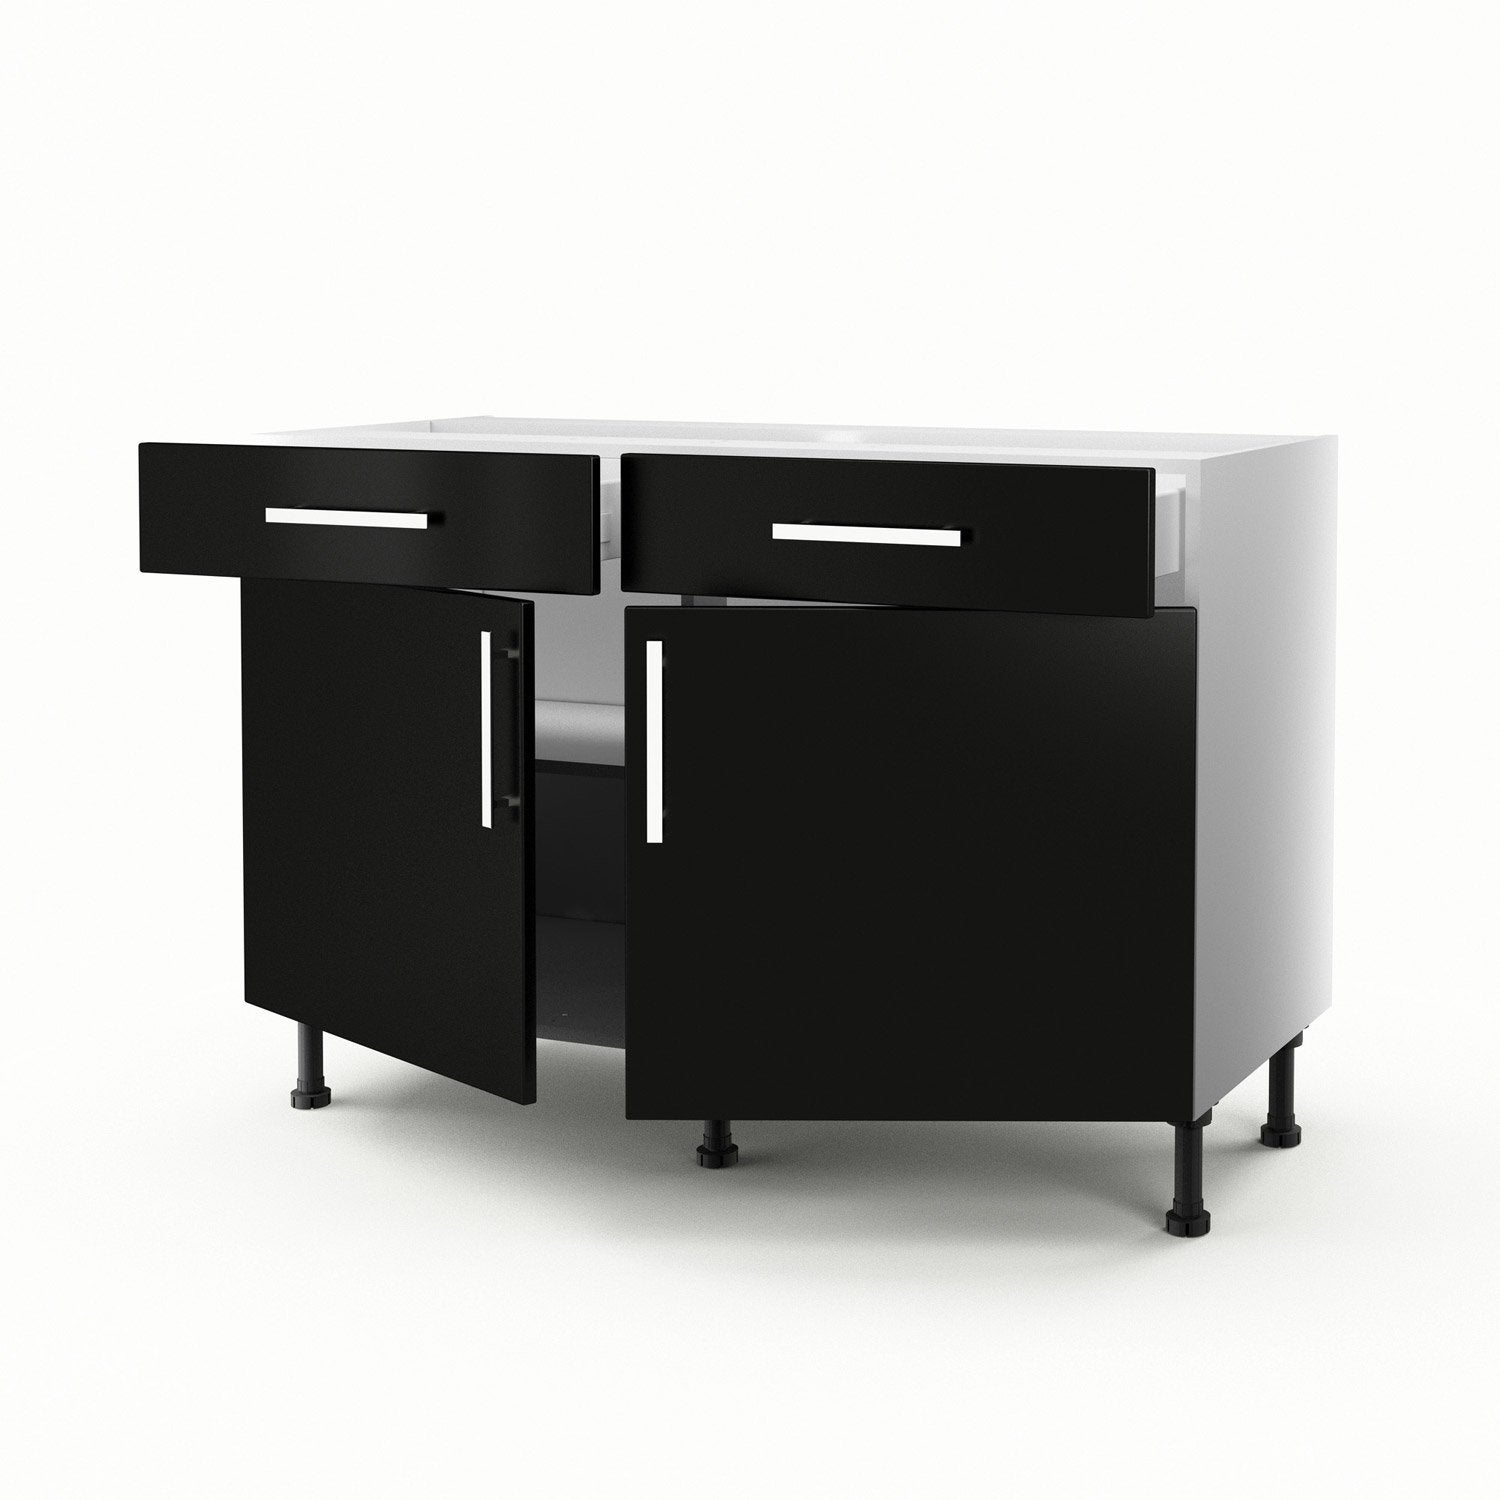 meuble de cuisine bas noir 2 portes 2 tiroirs d lice h. Black Bedroom Furniture Sets. Home Design Ideas